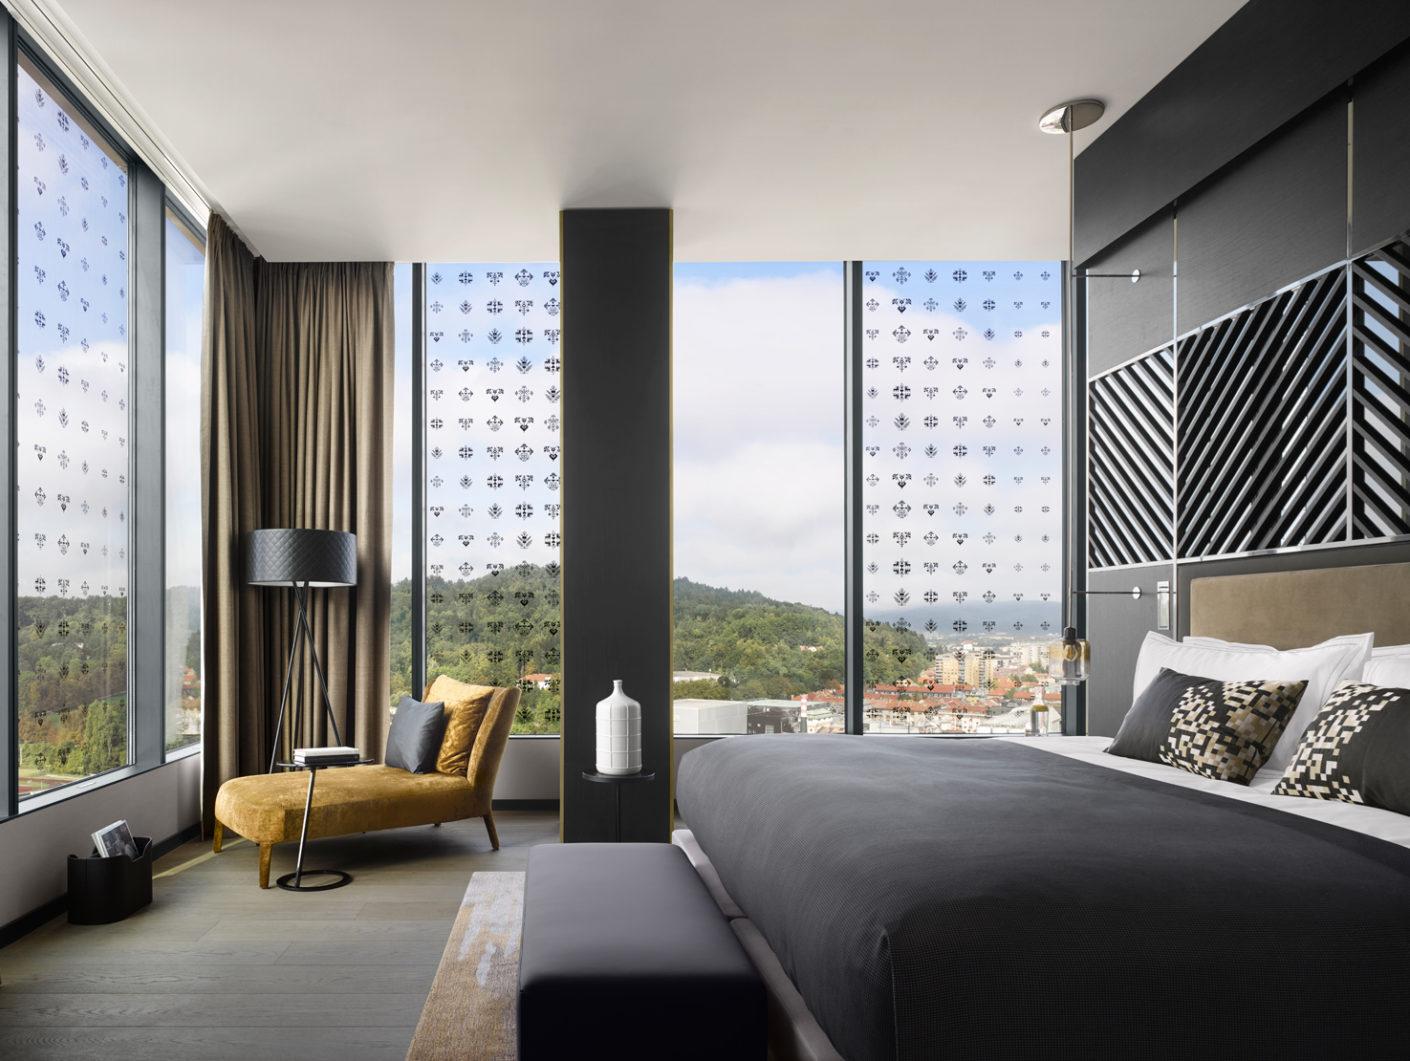 The spacious rooms of the 21-storey hotel offer a magnificent panorama thanks to floor-level windows.